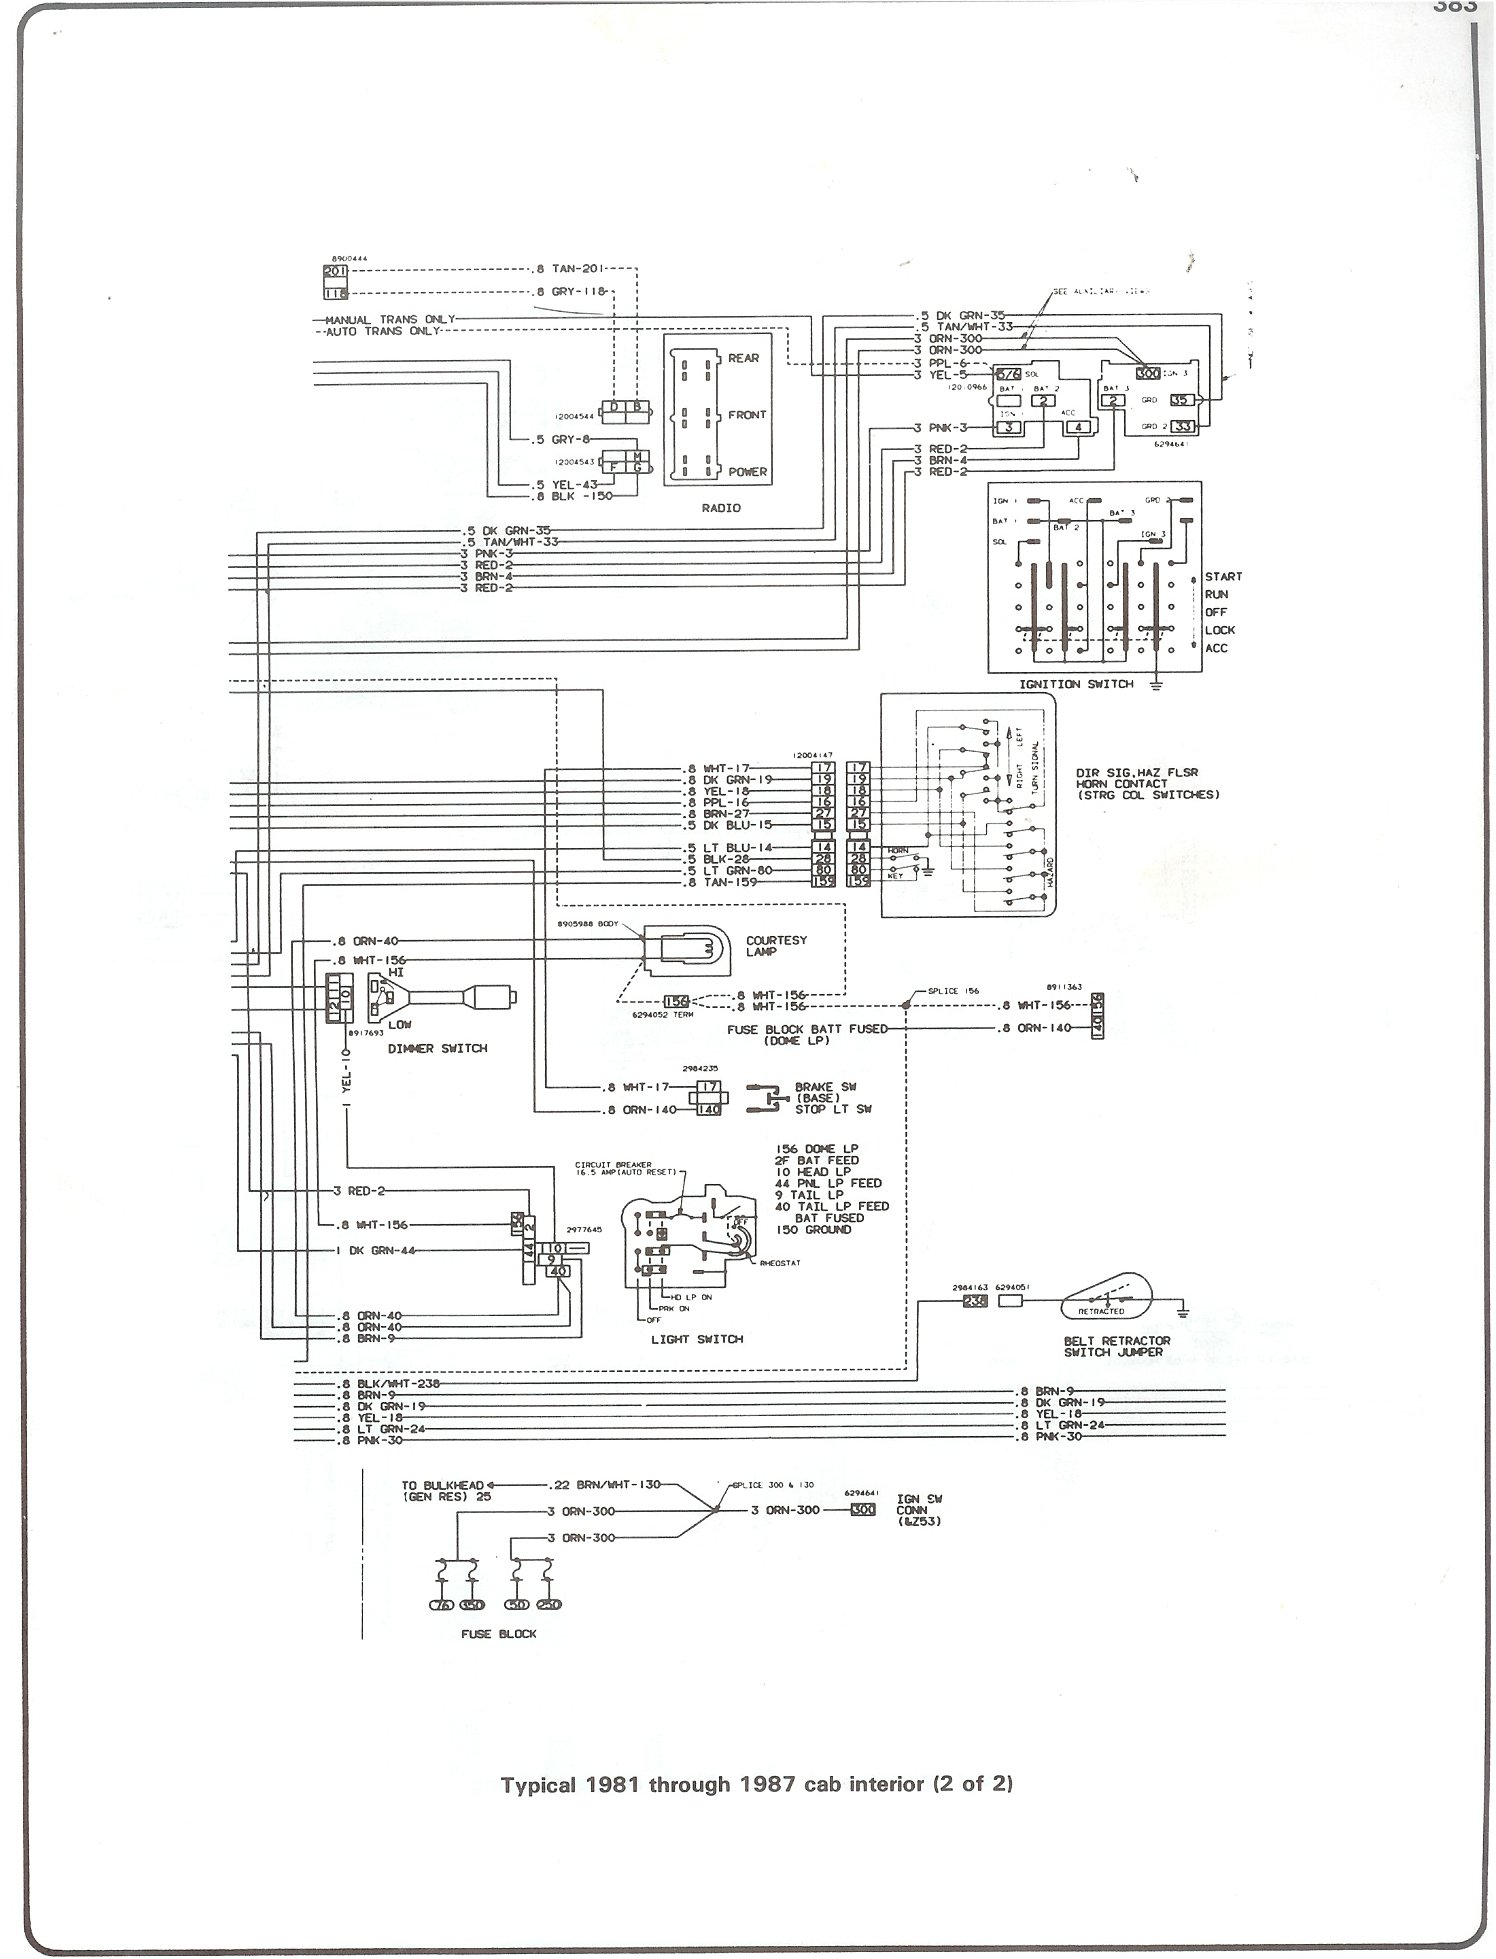 brake light switch wiring diagram? - blazer forum - chevy ... 1976 chevy k 5 wiring diagram 81 k 5 wiring diagram #3